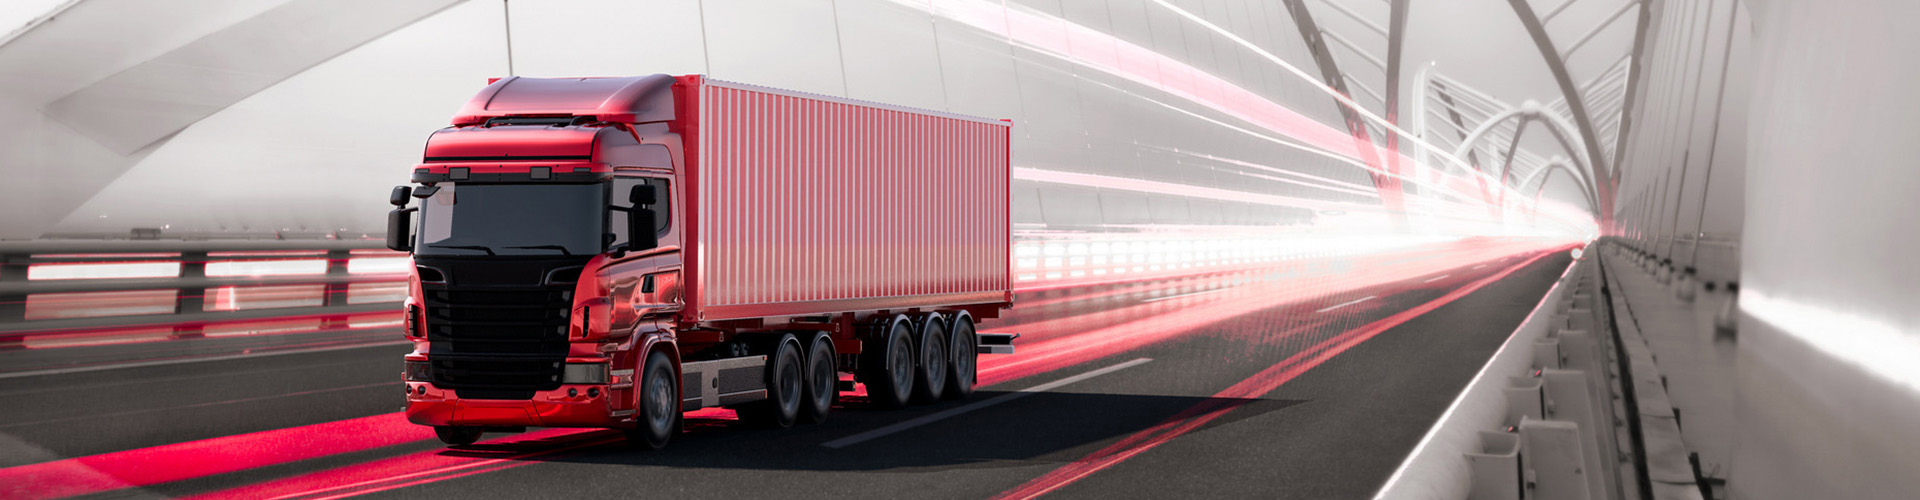 Vehicle monitoring solution for Logistics